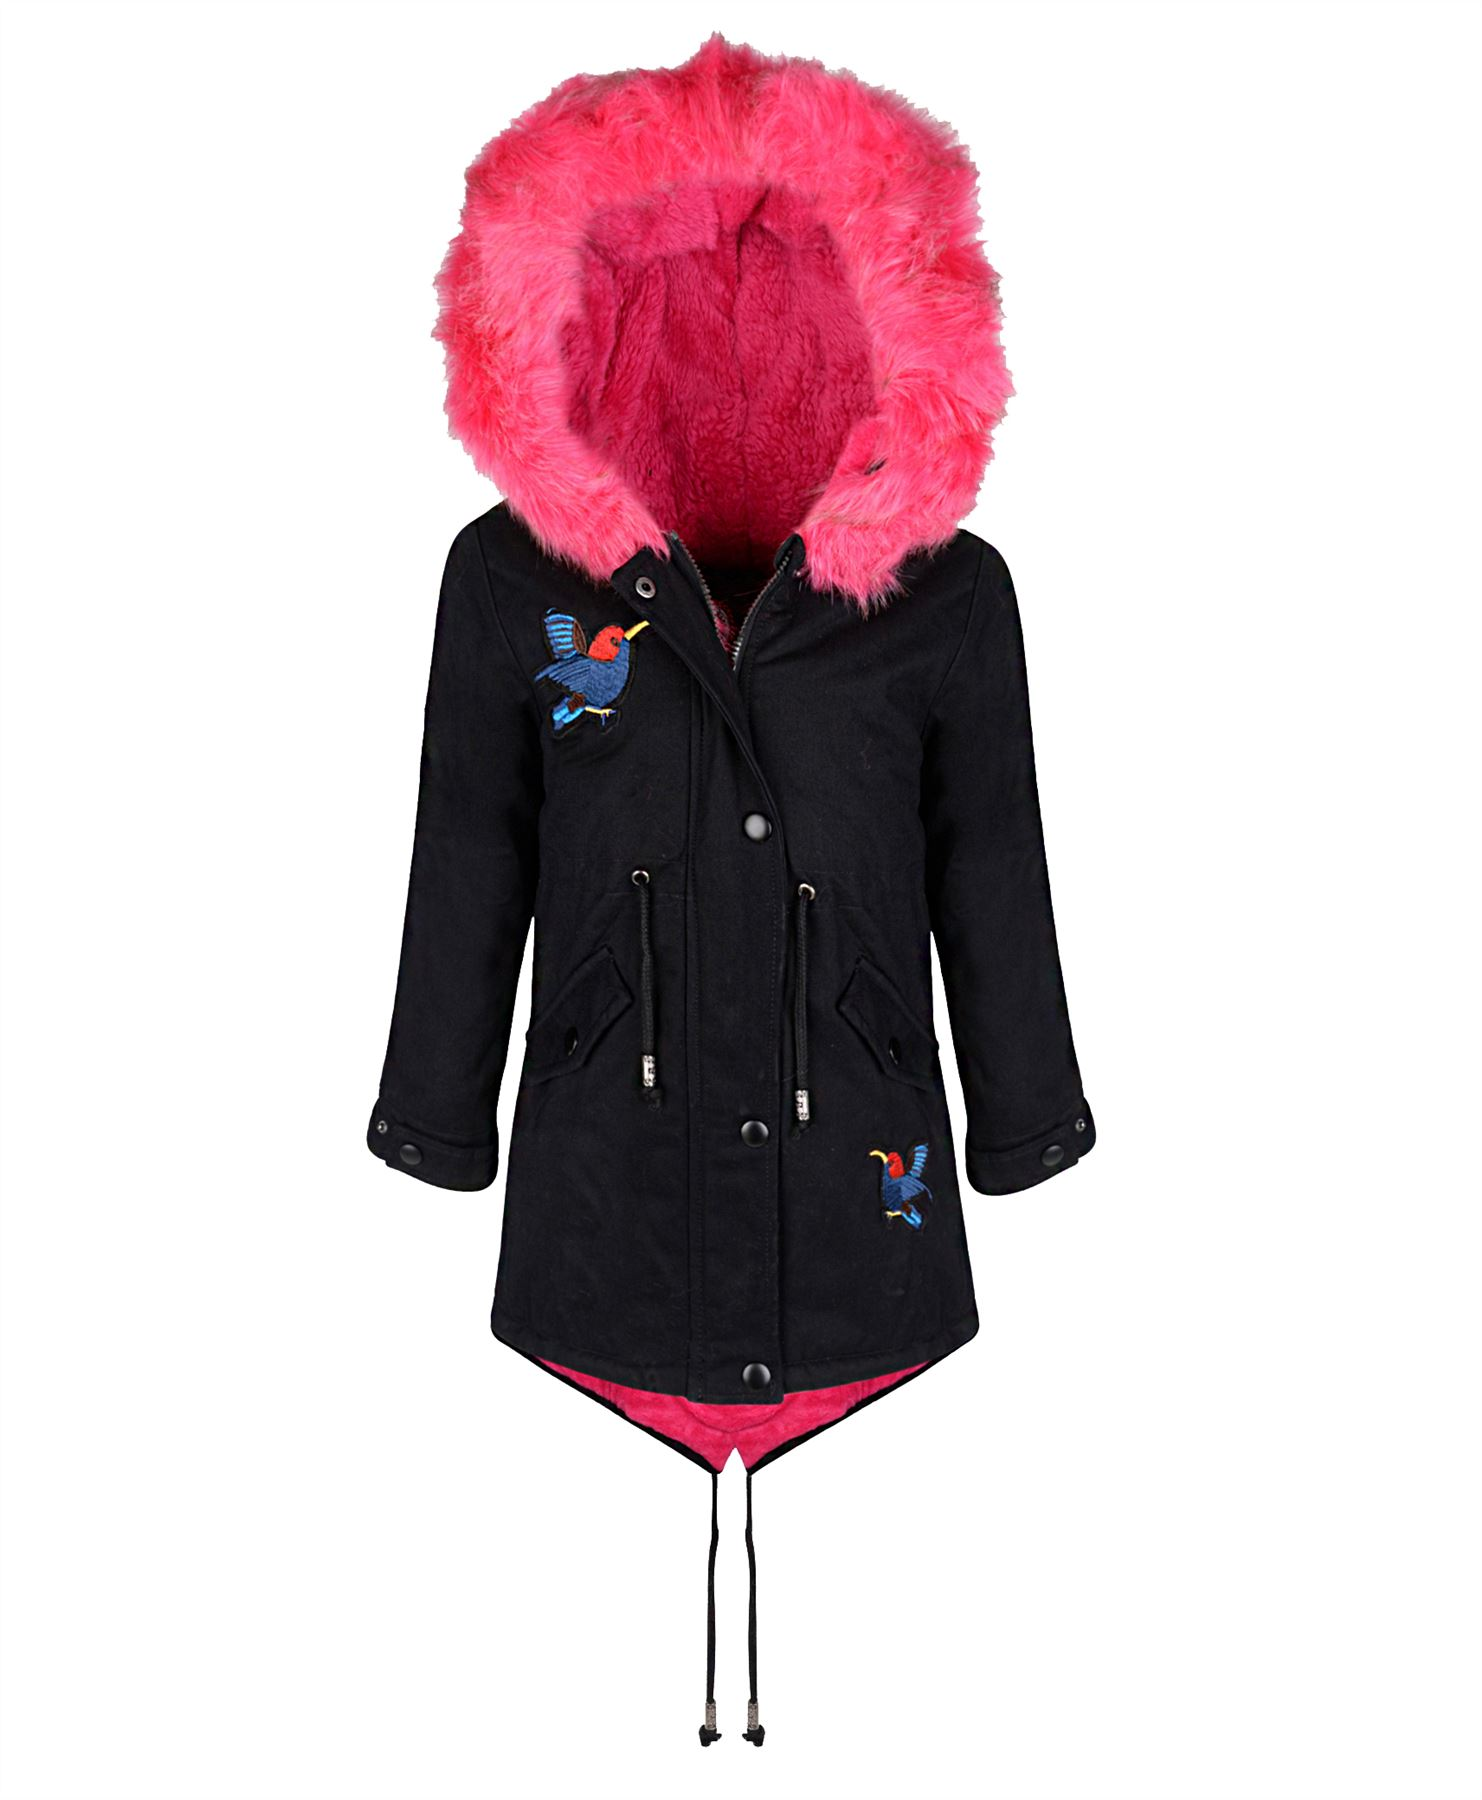 Girls-Winter-Parka-Coat-Kids-Hood-Padded-Jacket-Bird-Applique-Fur-Lining-7-16-Y